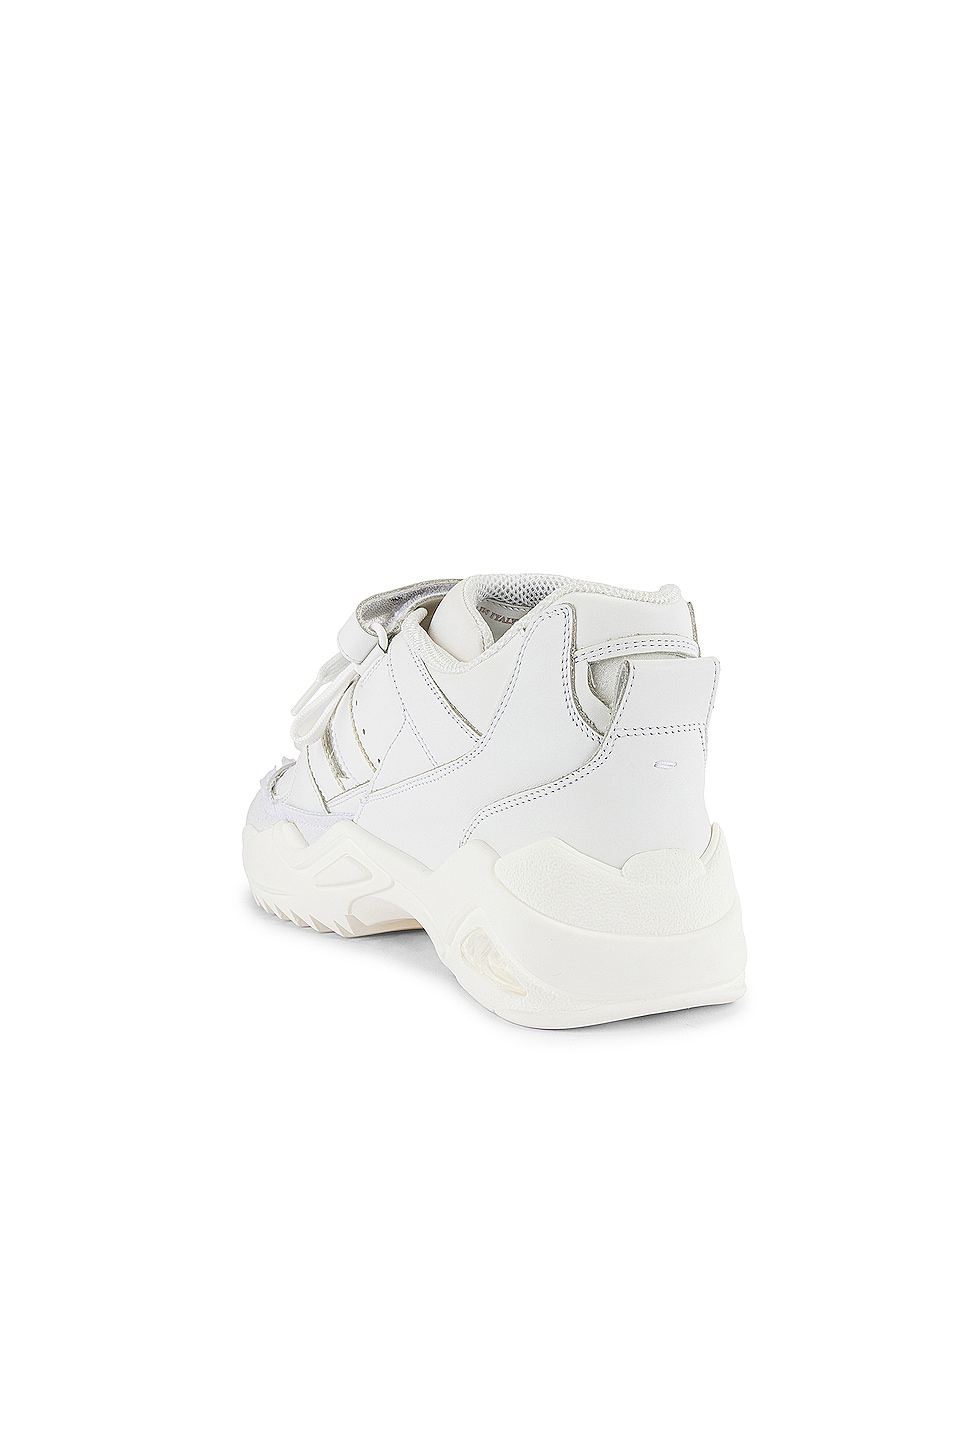 Image 3 of Maison Margiela Retro Fit Midi Sneaker in White